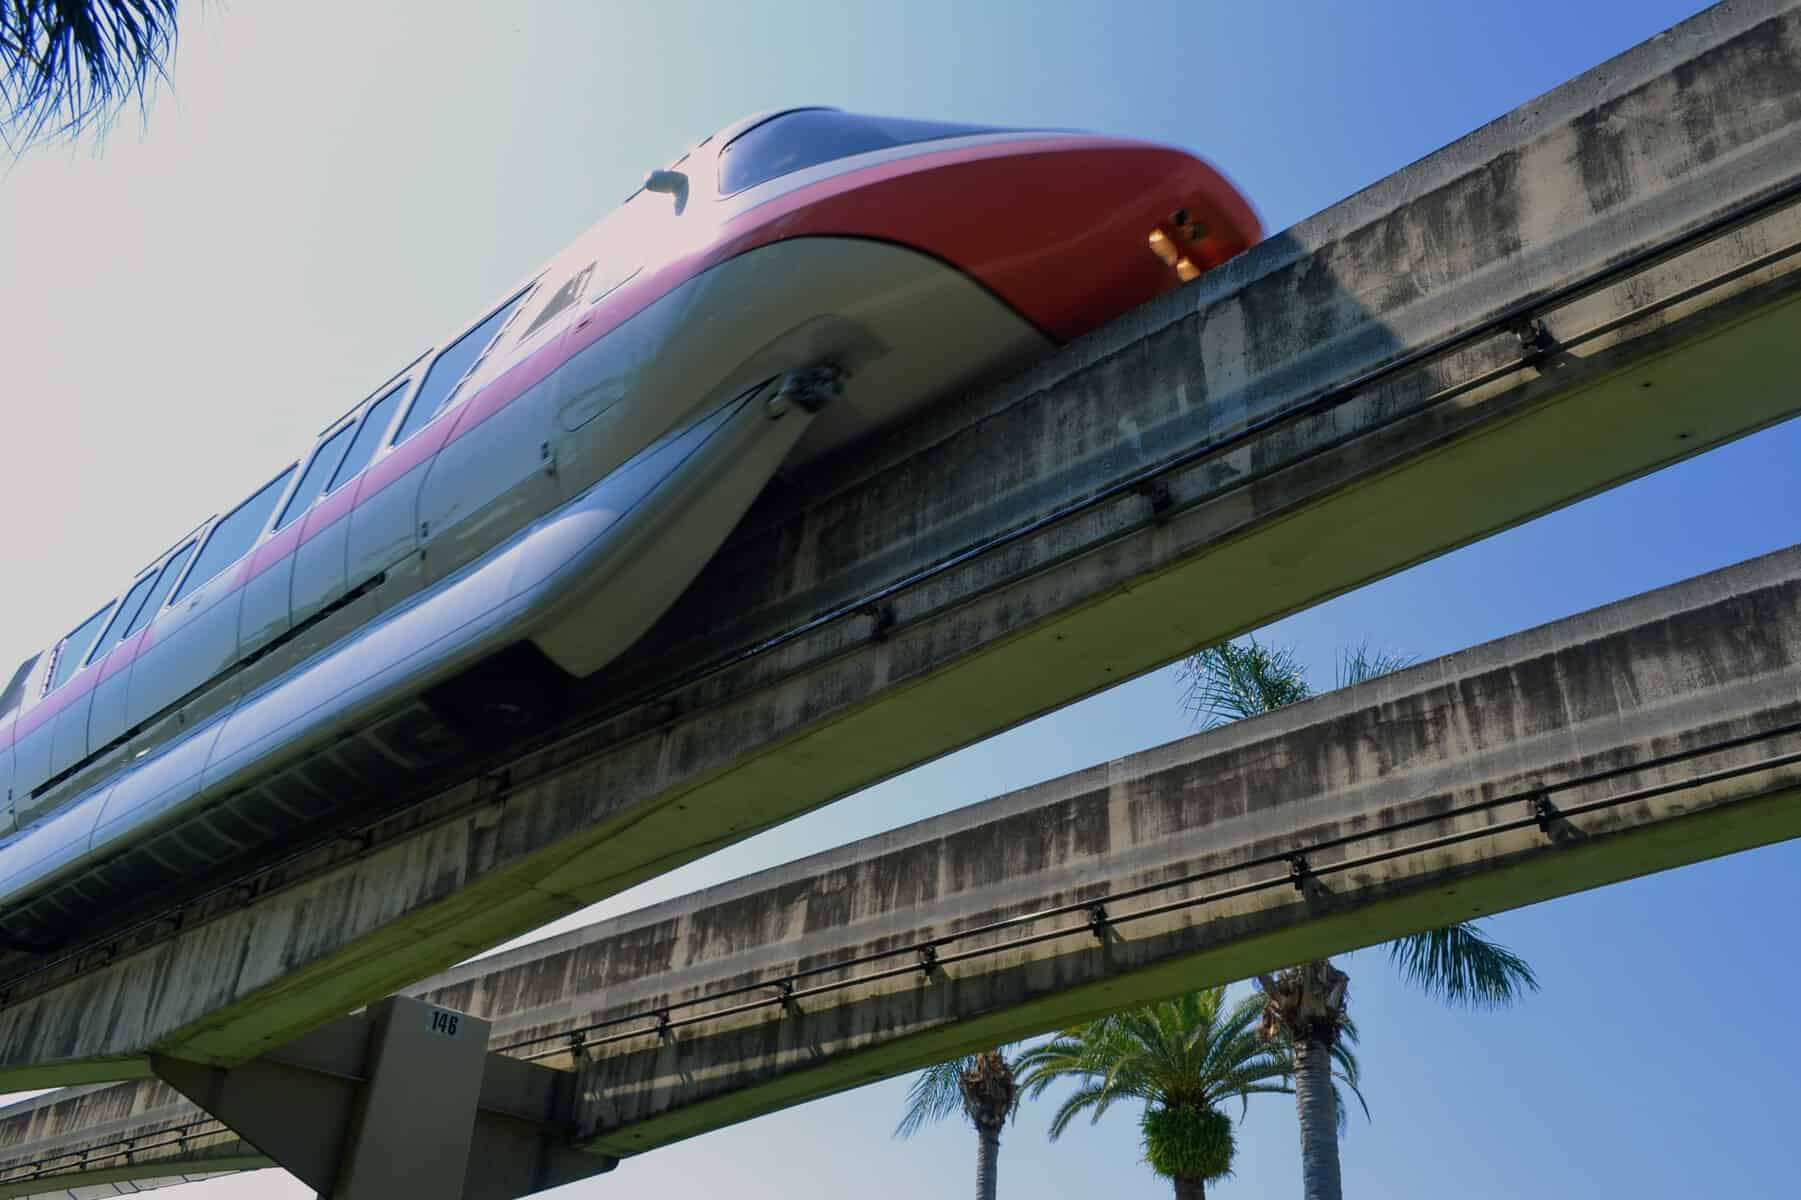 Monorail in the sky